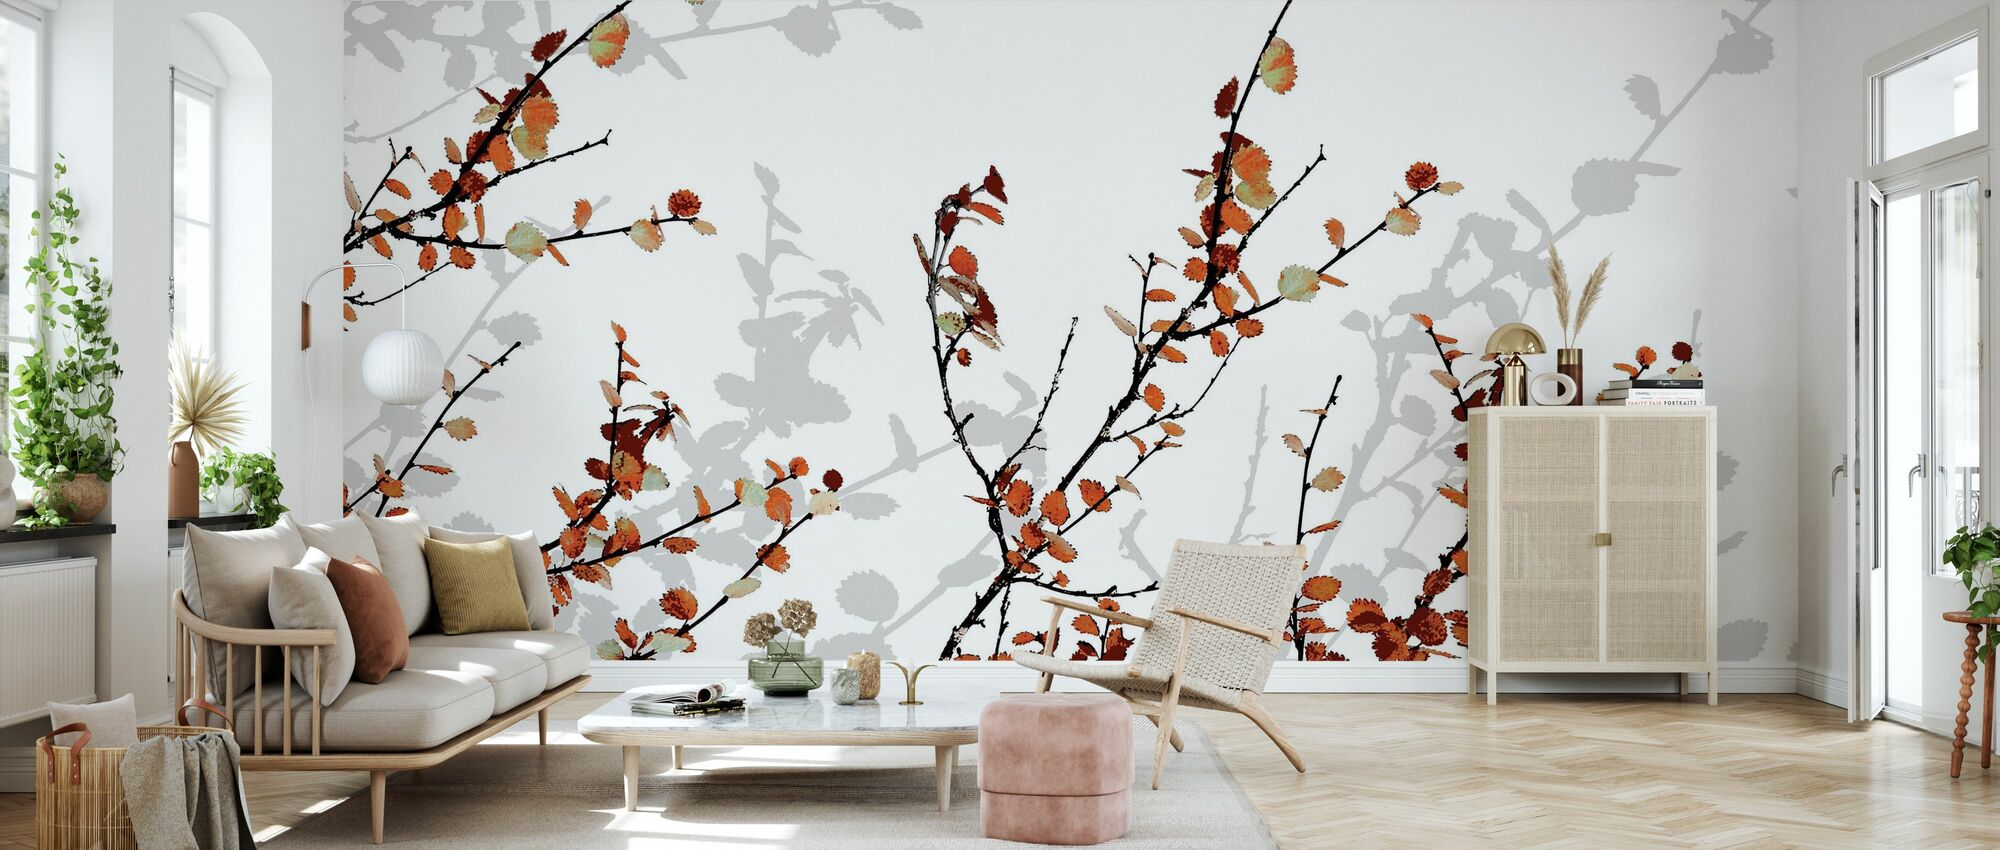 Mountain Birch Orange - Wallpaper - Living Room